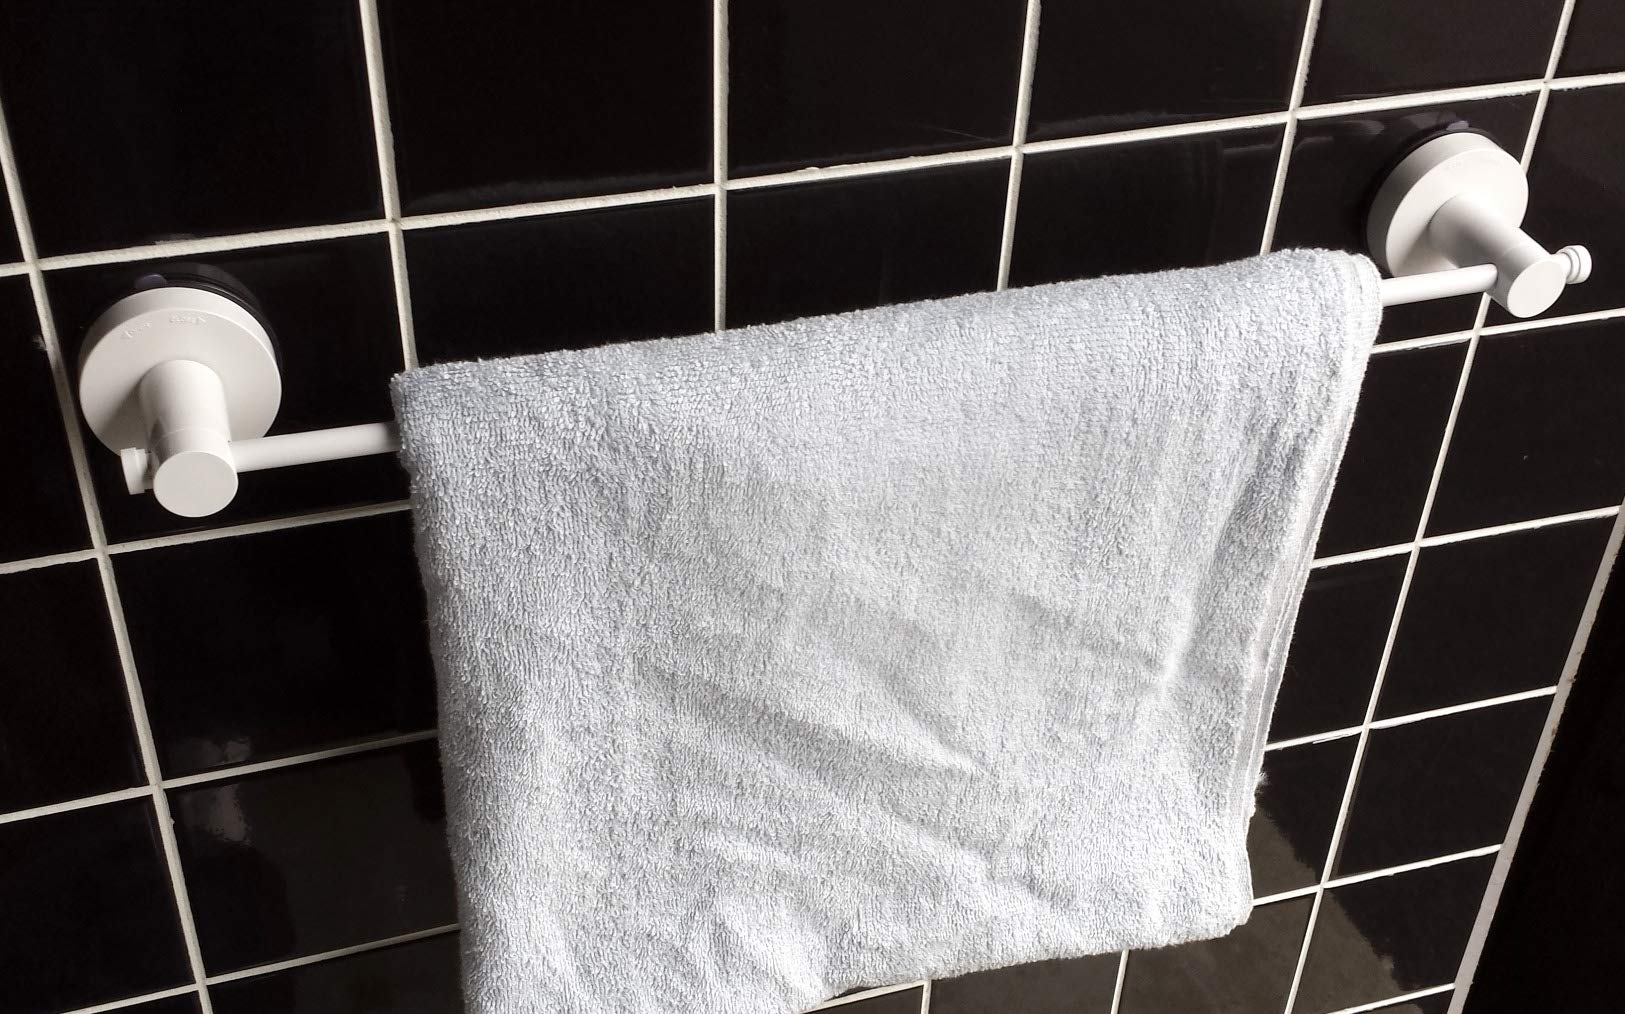 Genexice White Alloy Suction Towel Bar